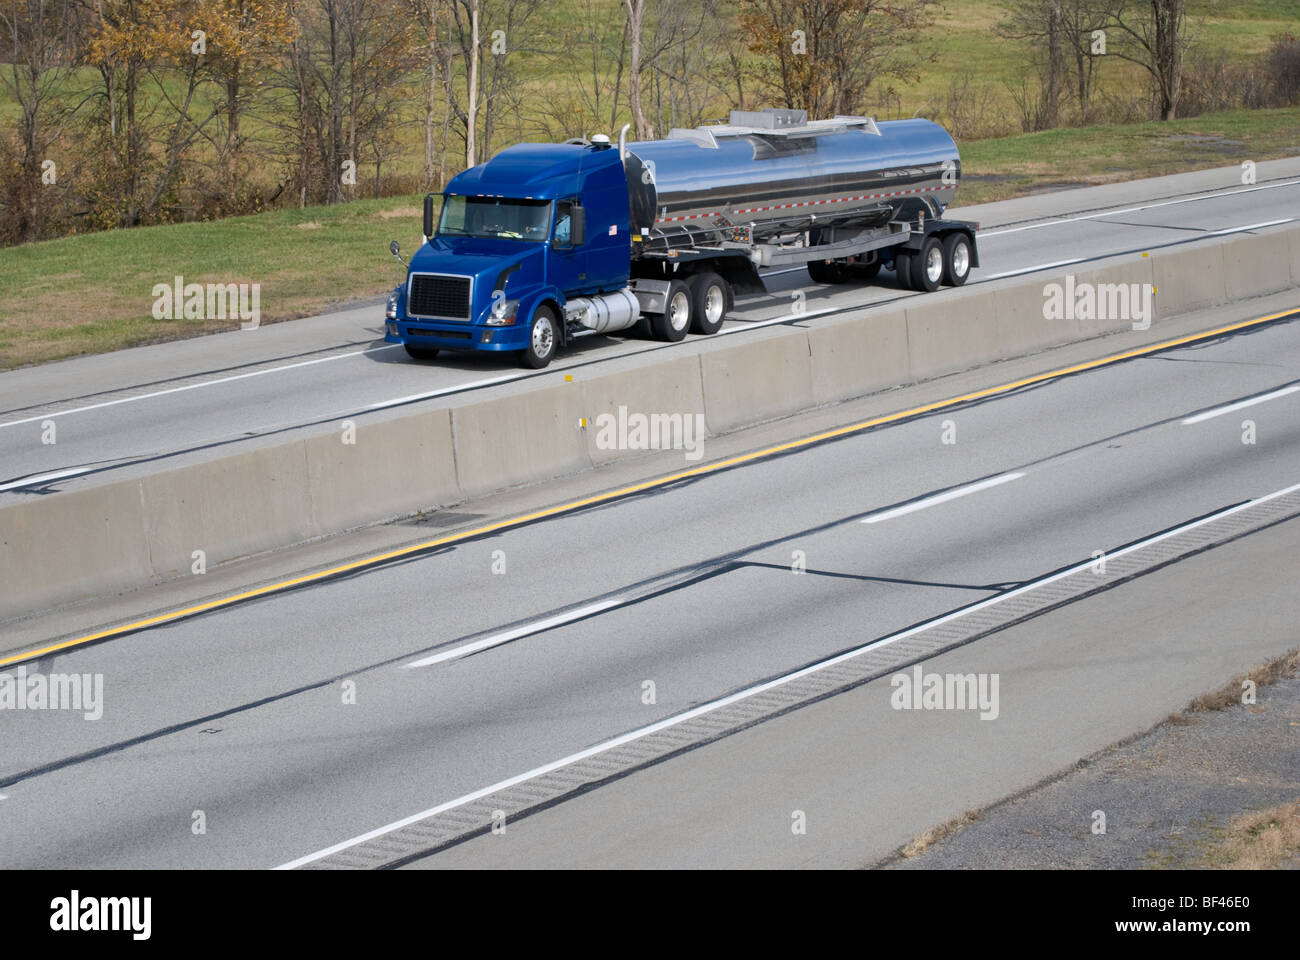 Stock photo of a modern tanker tractor trailer hauling bulk liquid traveling on an American interstate highway. - Stock Image